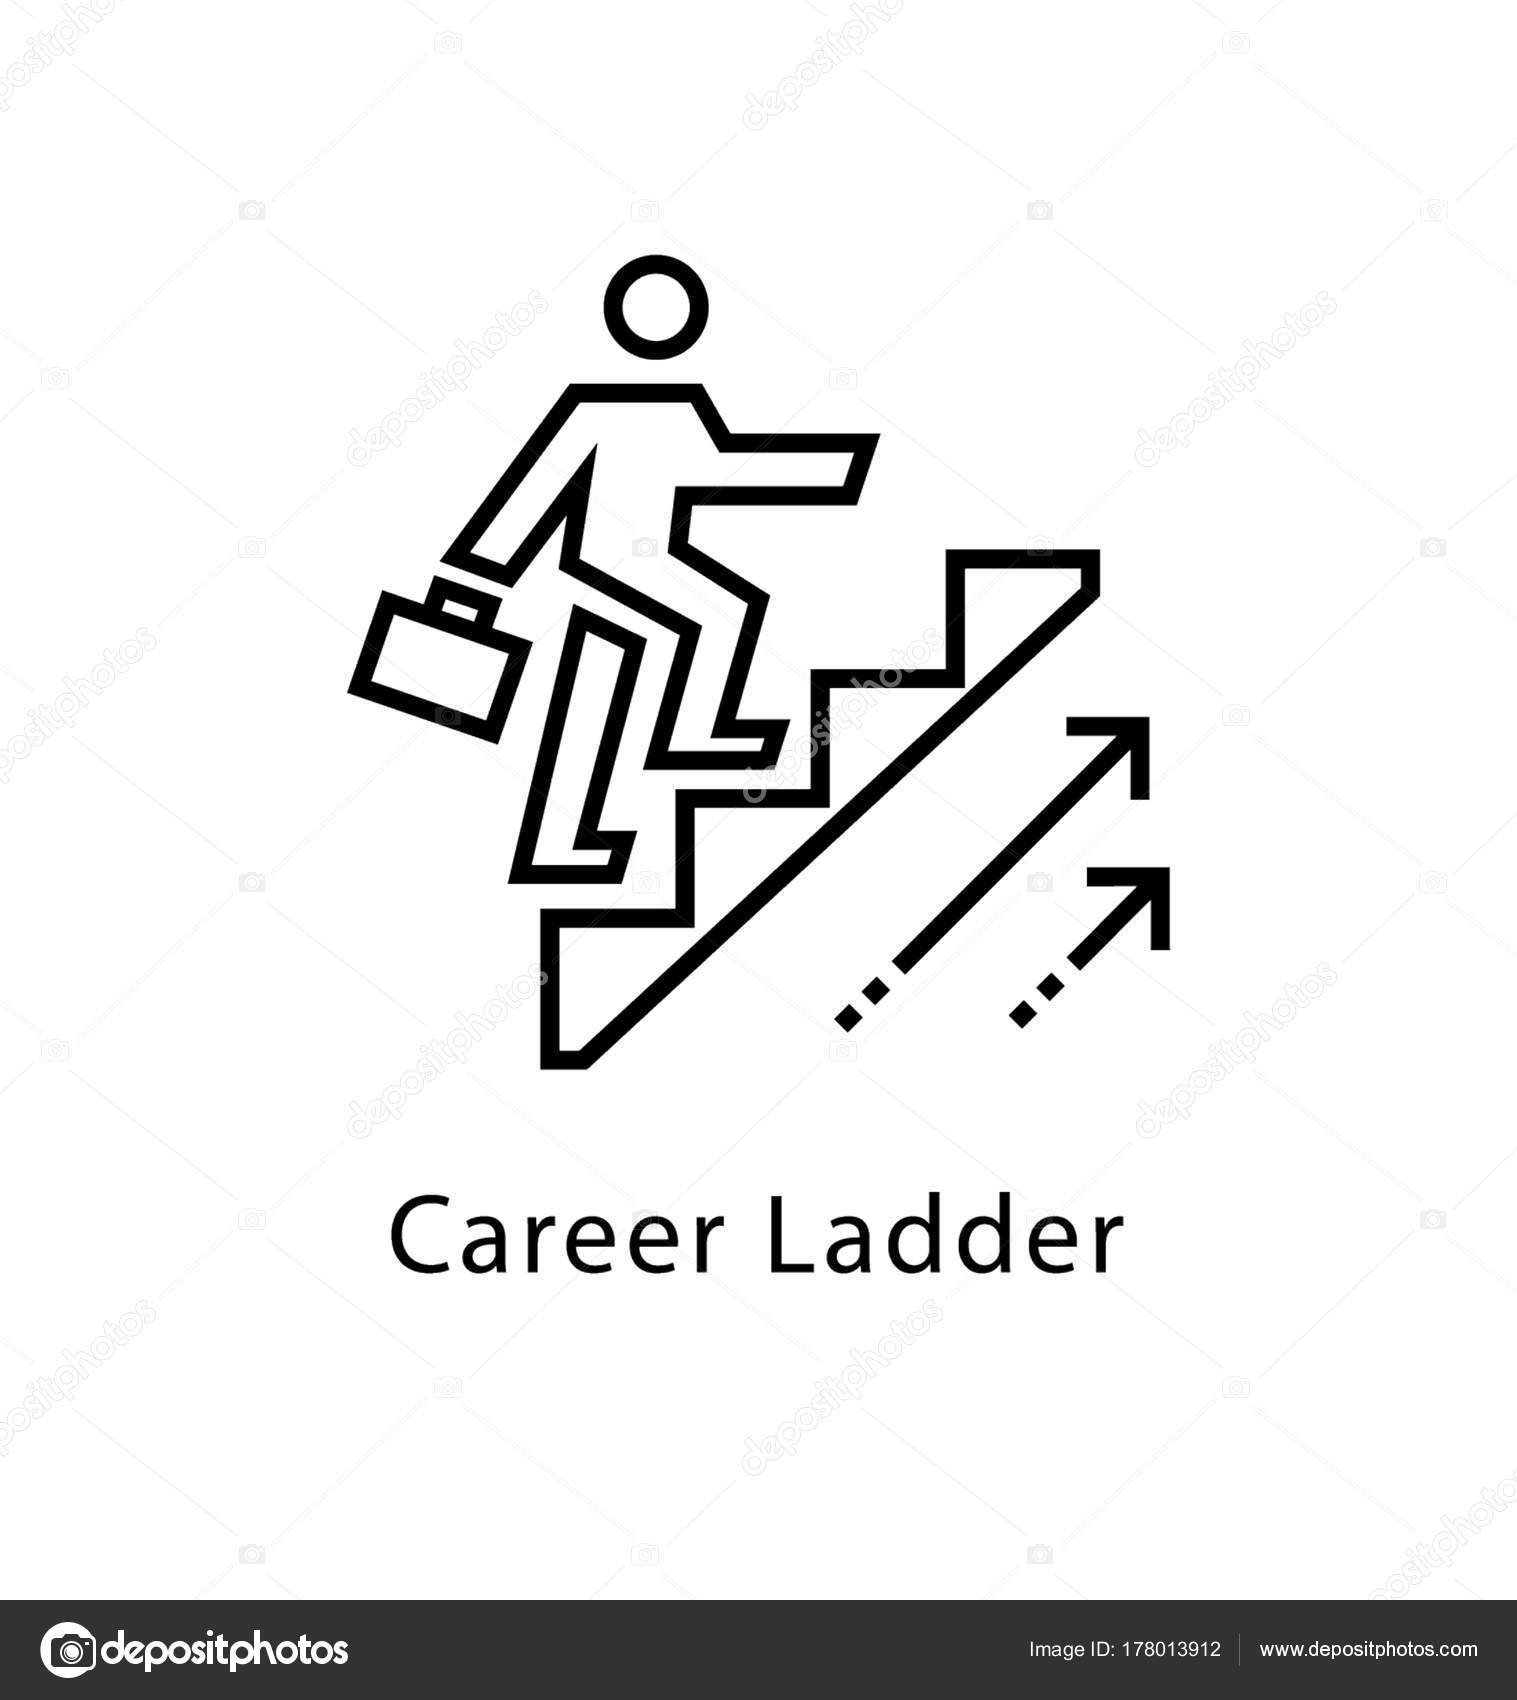 Career Ladder Vector Line Icon